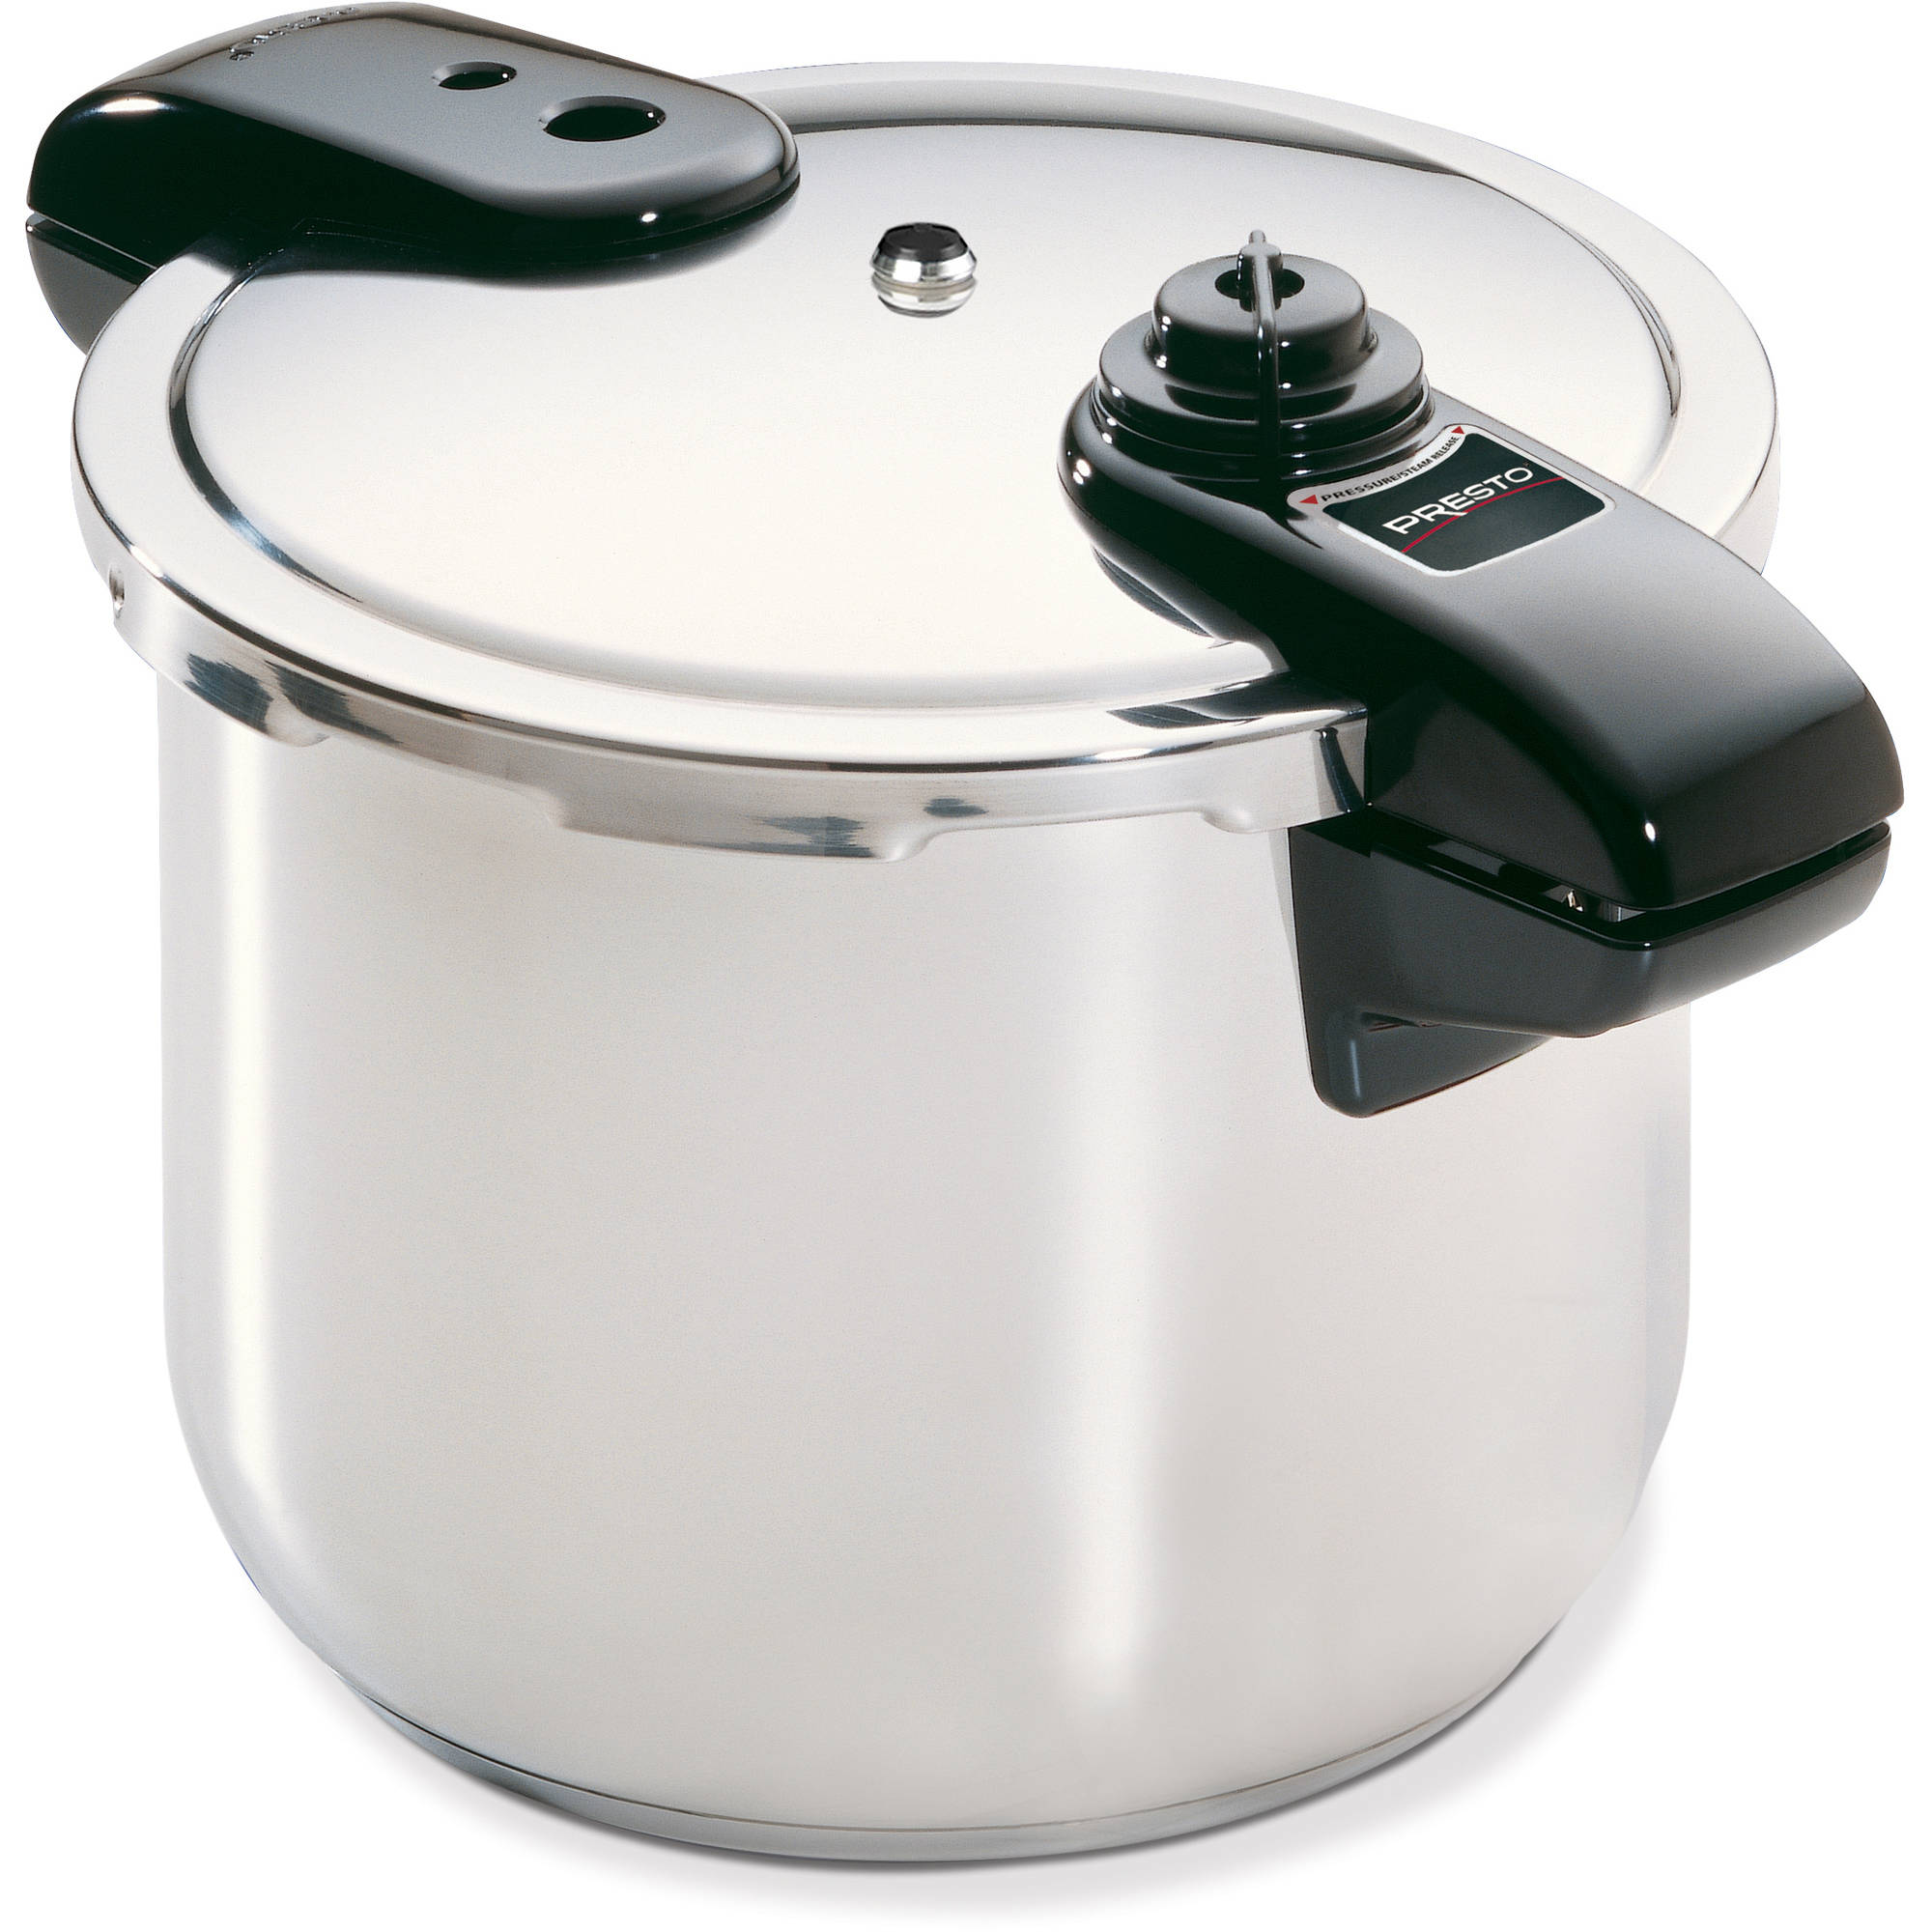 stainless steel pressure cooker 6 qt